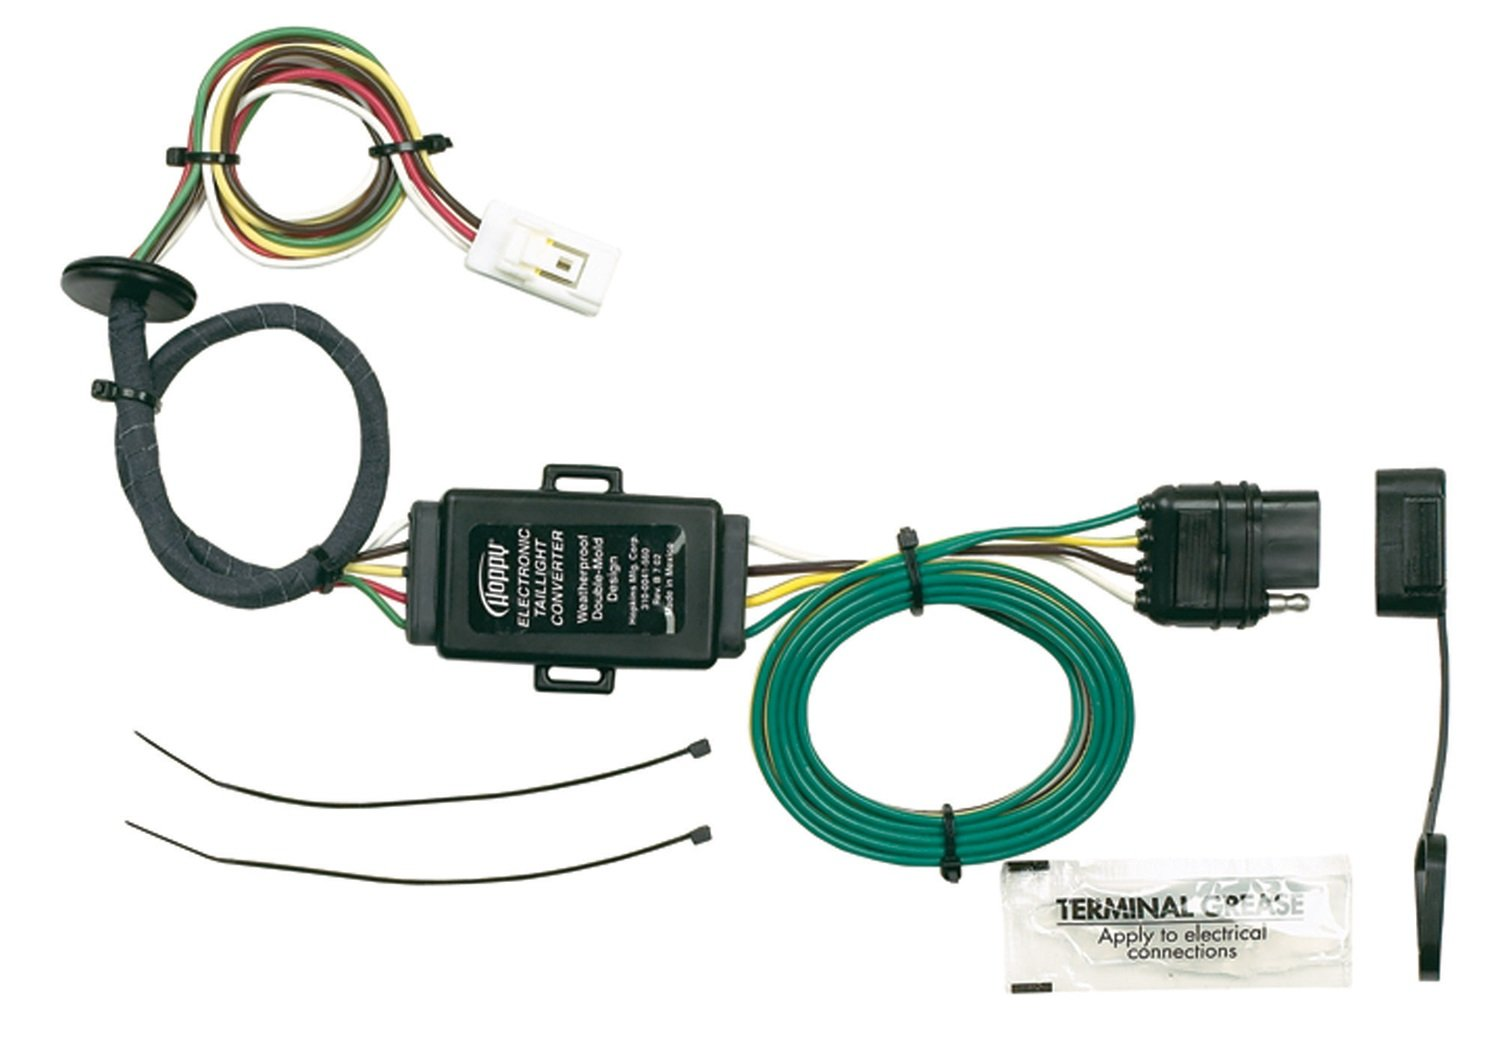 61fZtpD 4JL._SL1500_ amazon com hopkins 43215 plug in simple vehicle wiring kit hoppy wiring harness at crackthecode.co